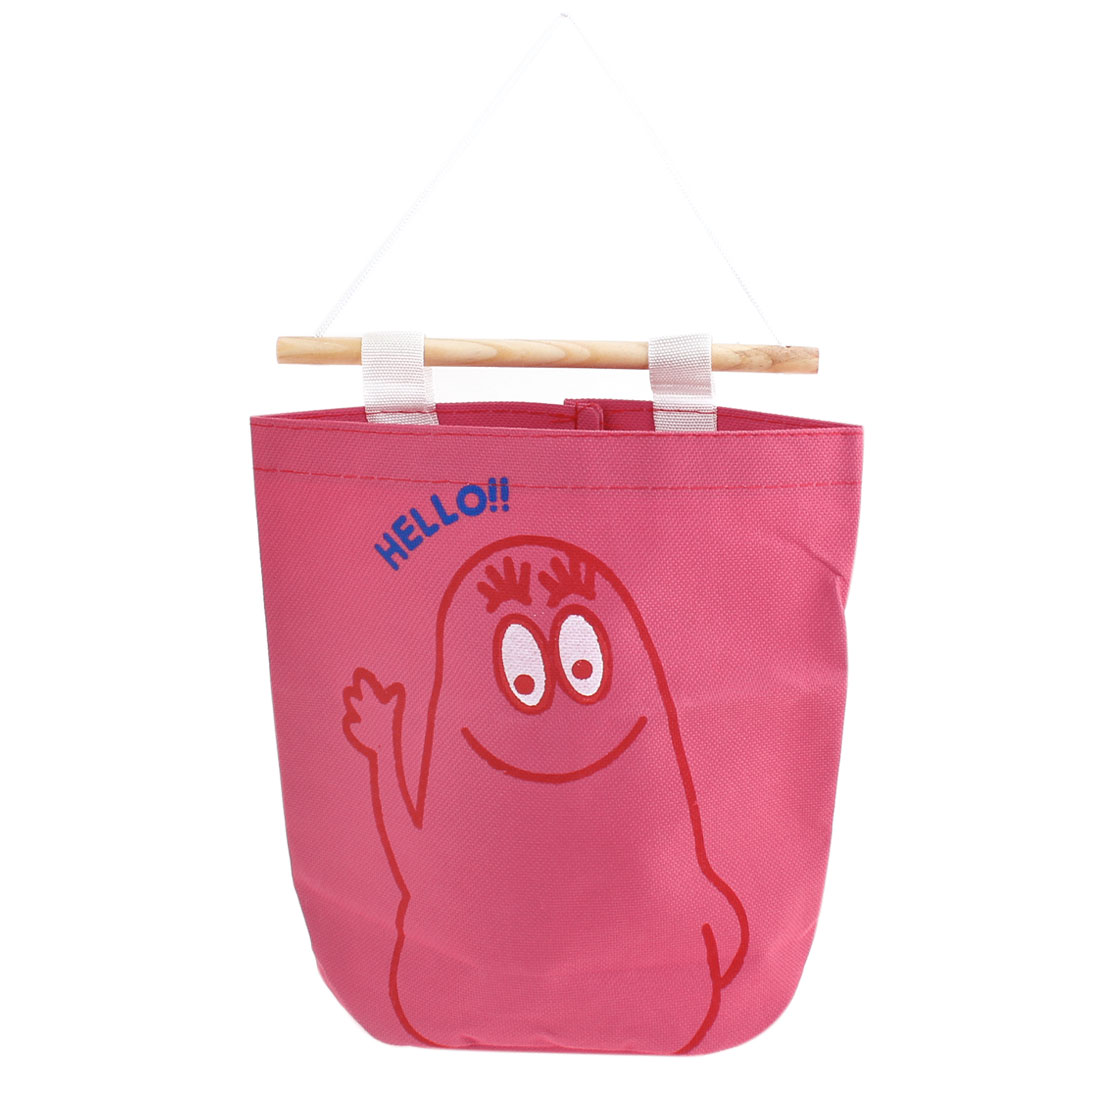 Washroom Toilet Fuchsia Nylon Tissue Pumping Paper Storage Bag w Crabstick